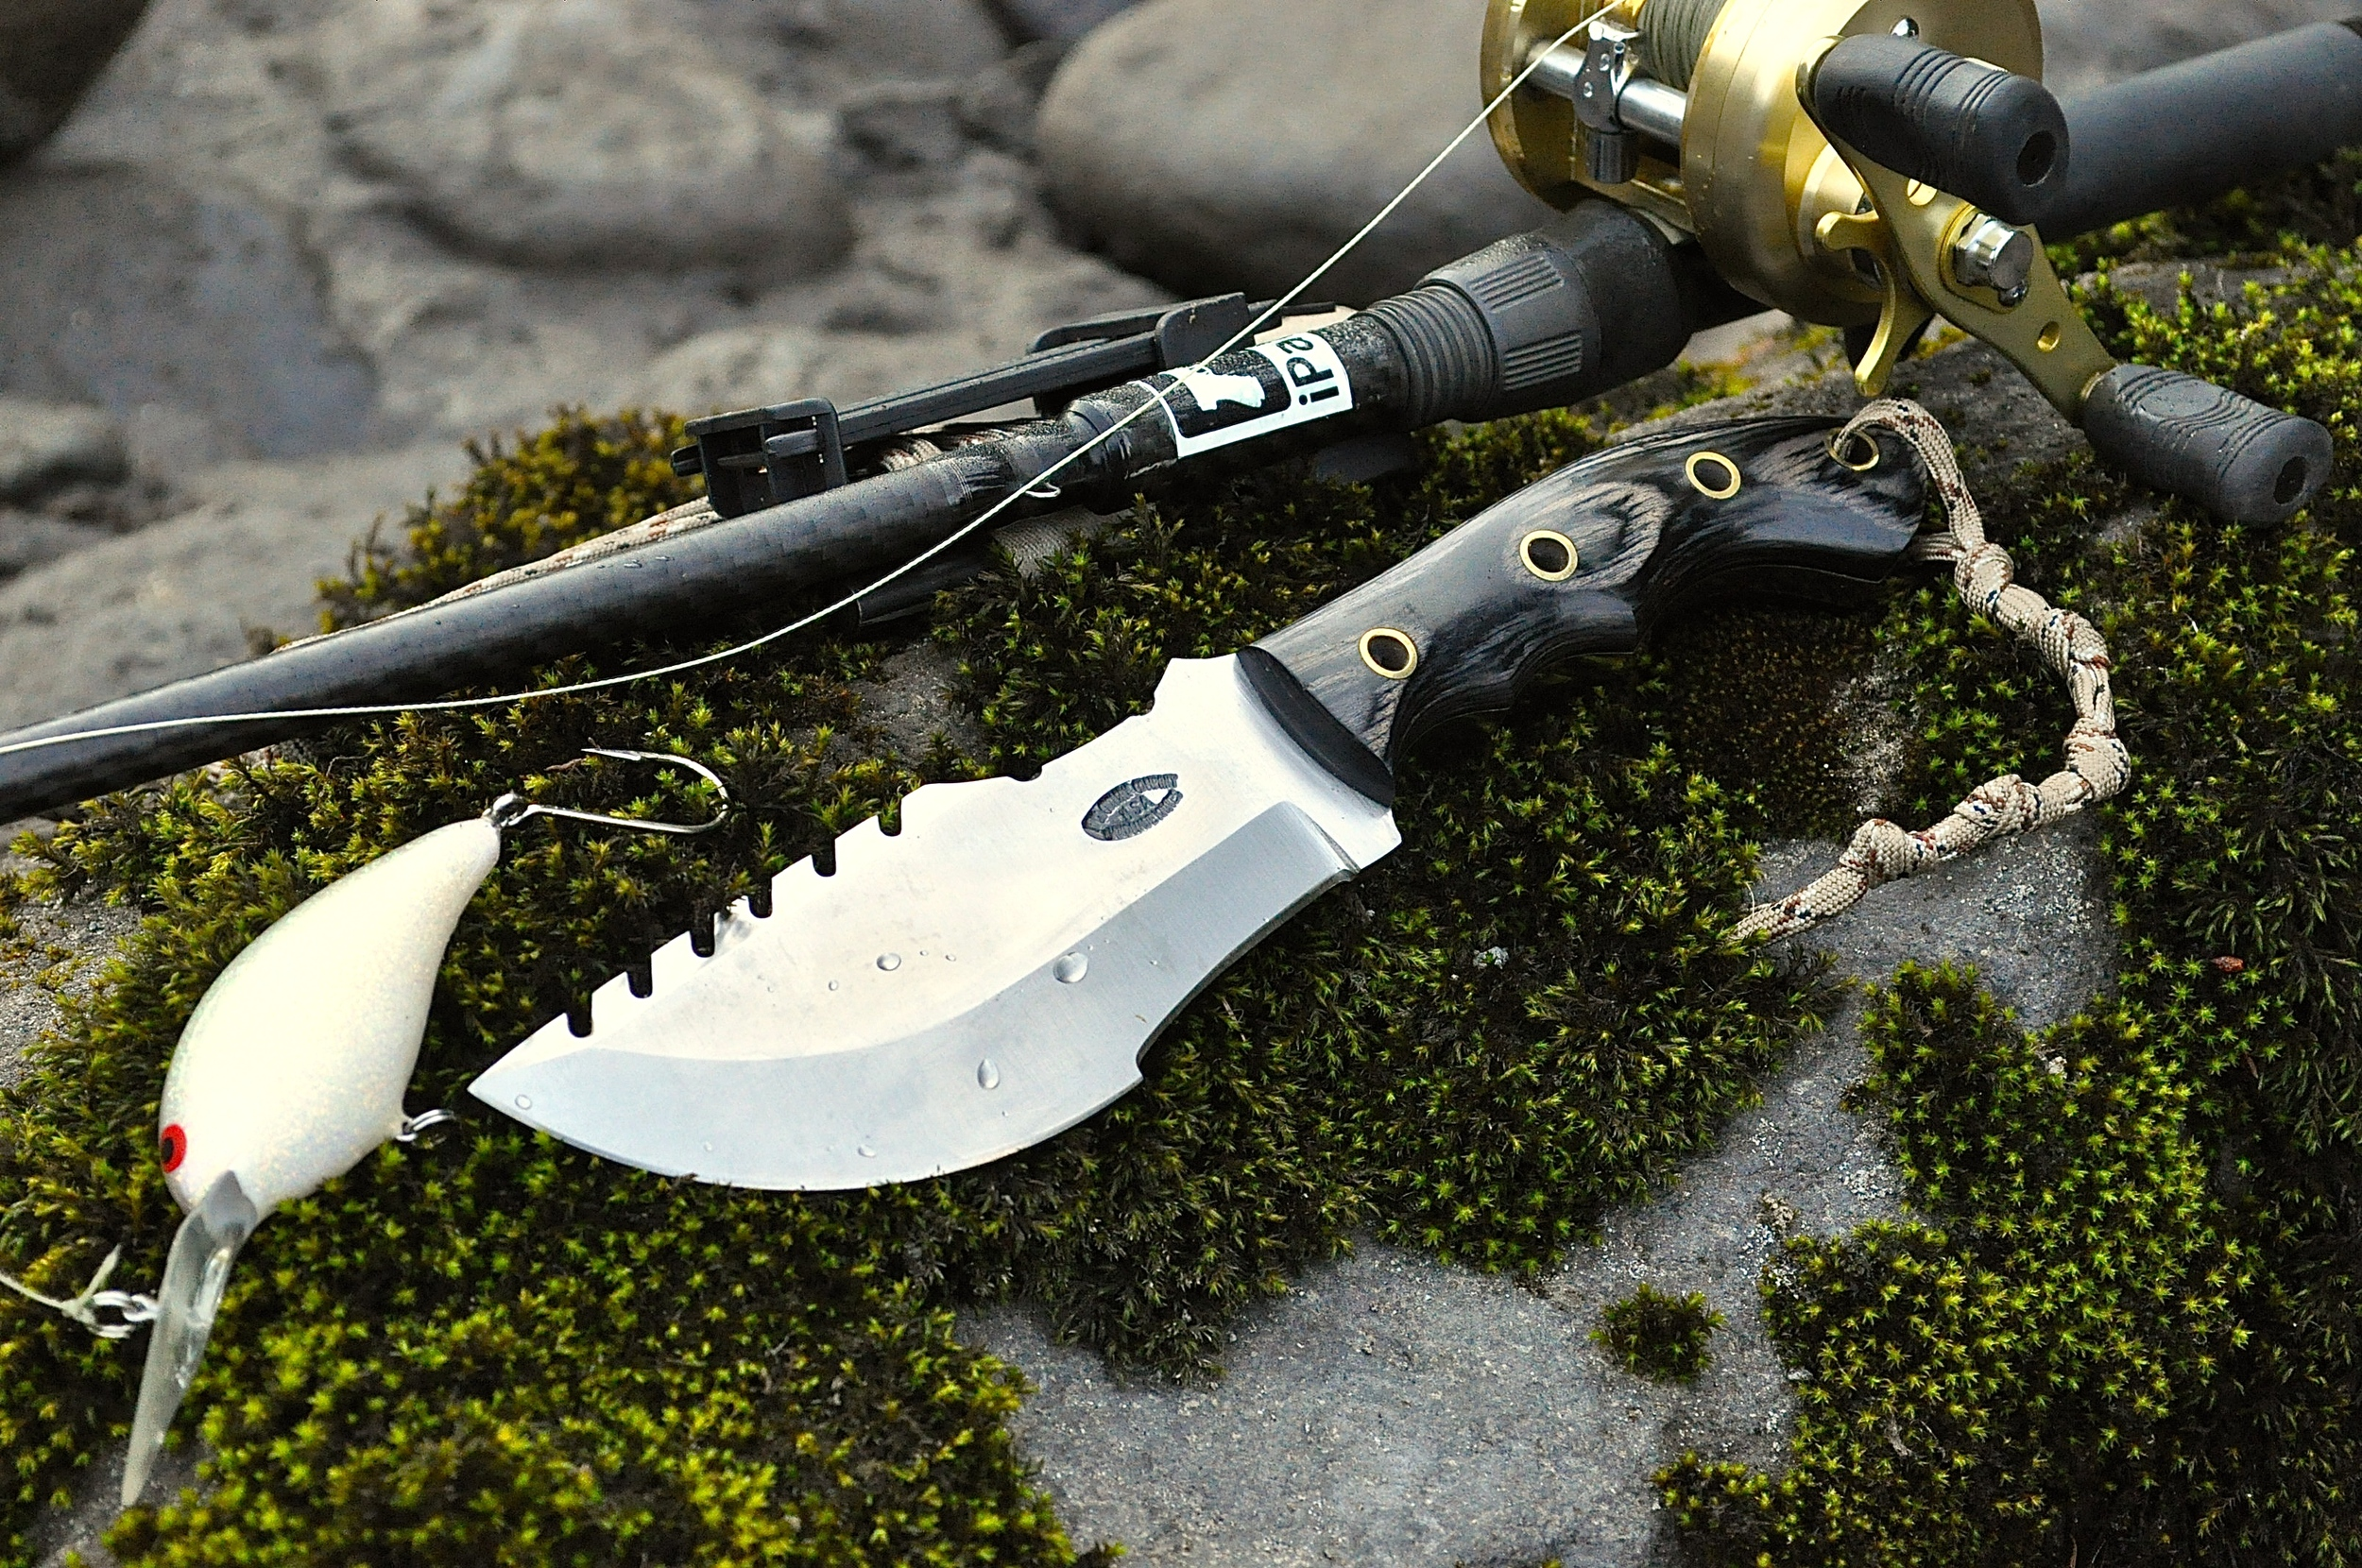 Learn more about CFK Cutlery Company